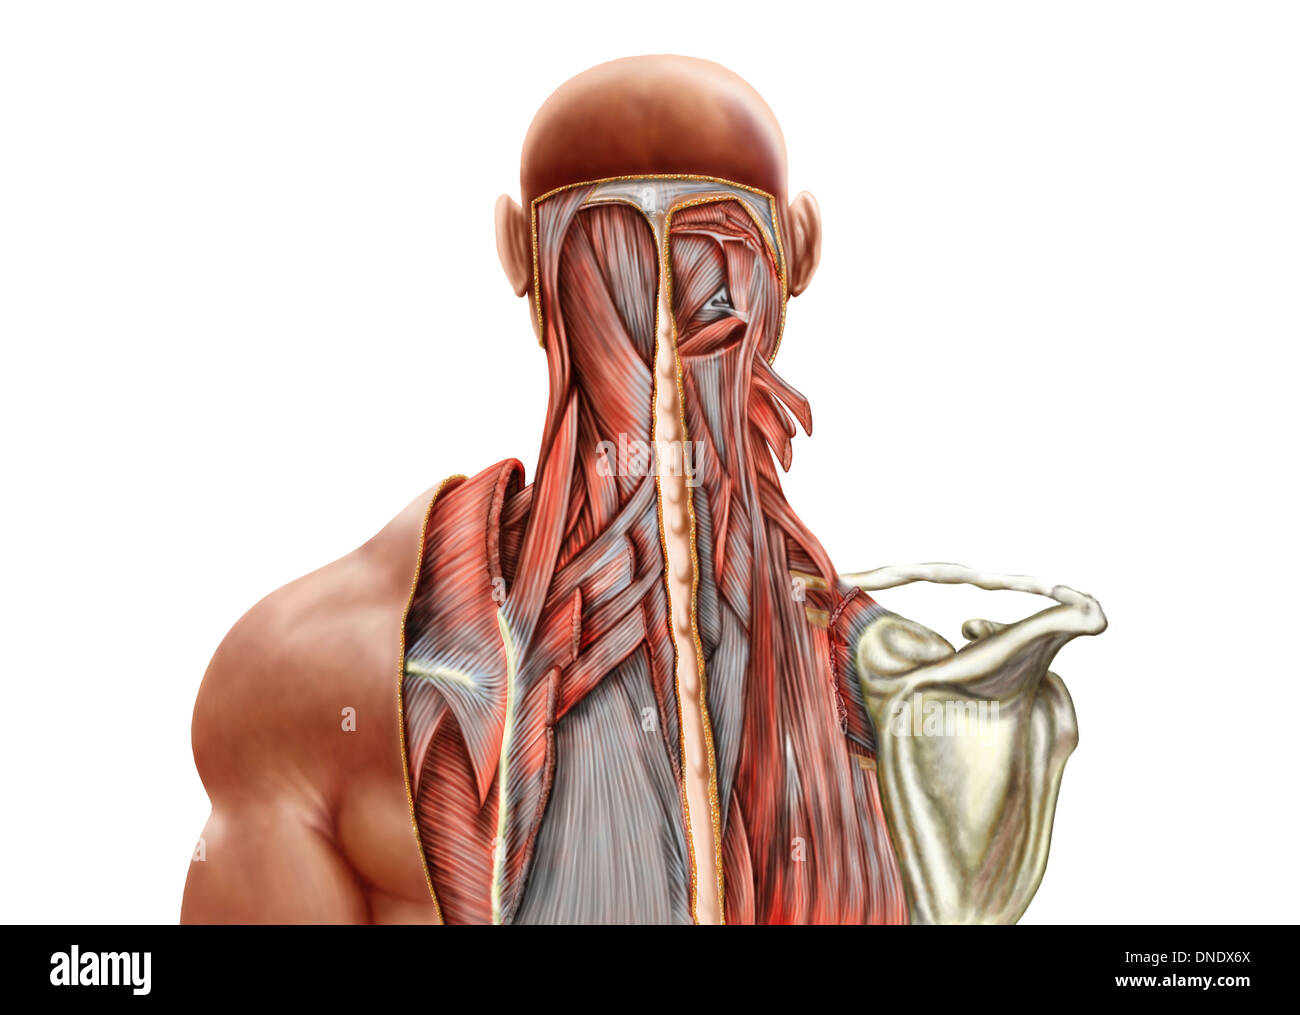 Human Anatomy Showing Deep Muscles In The Neck And Upper Back Stock